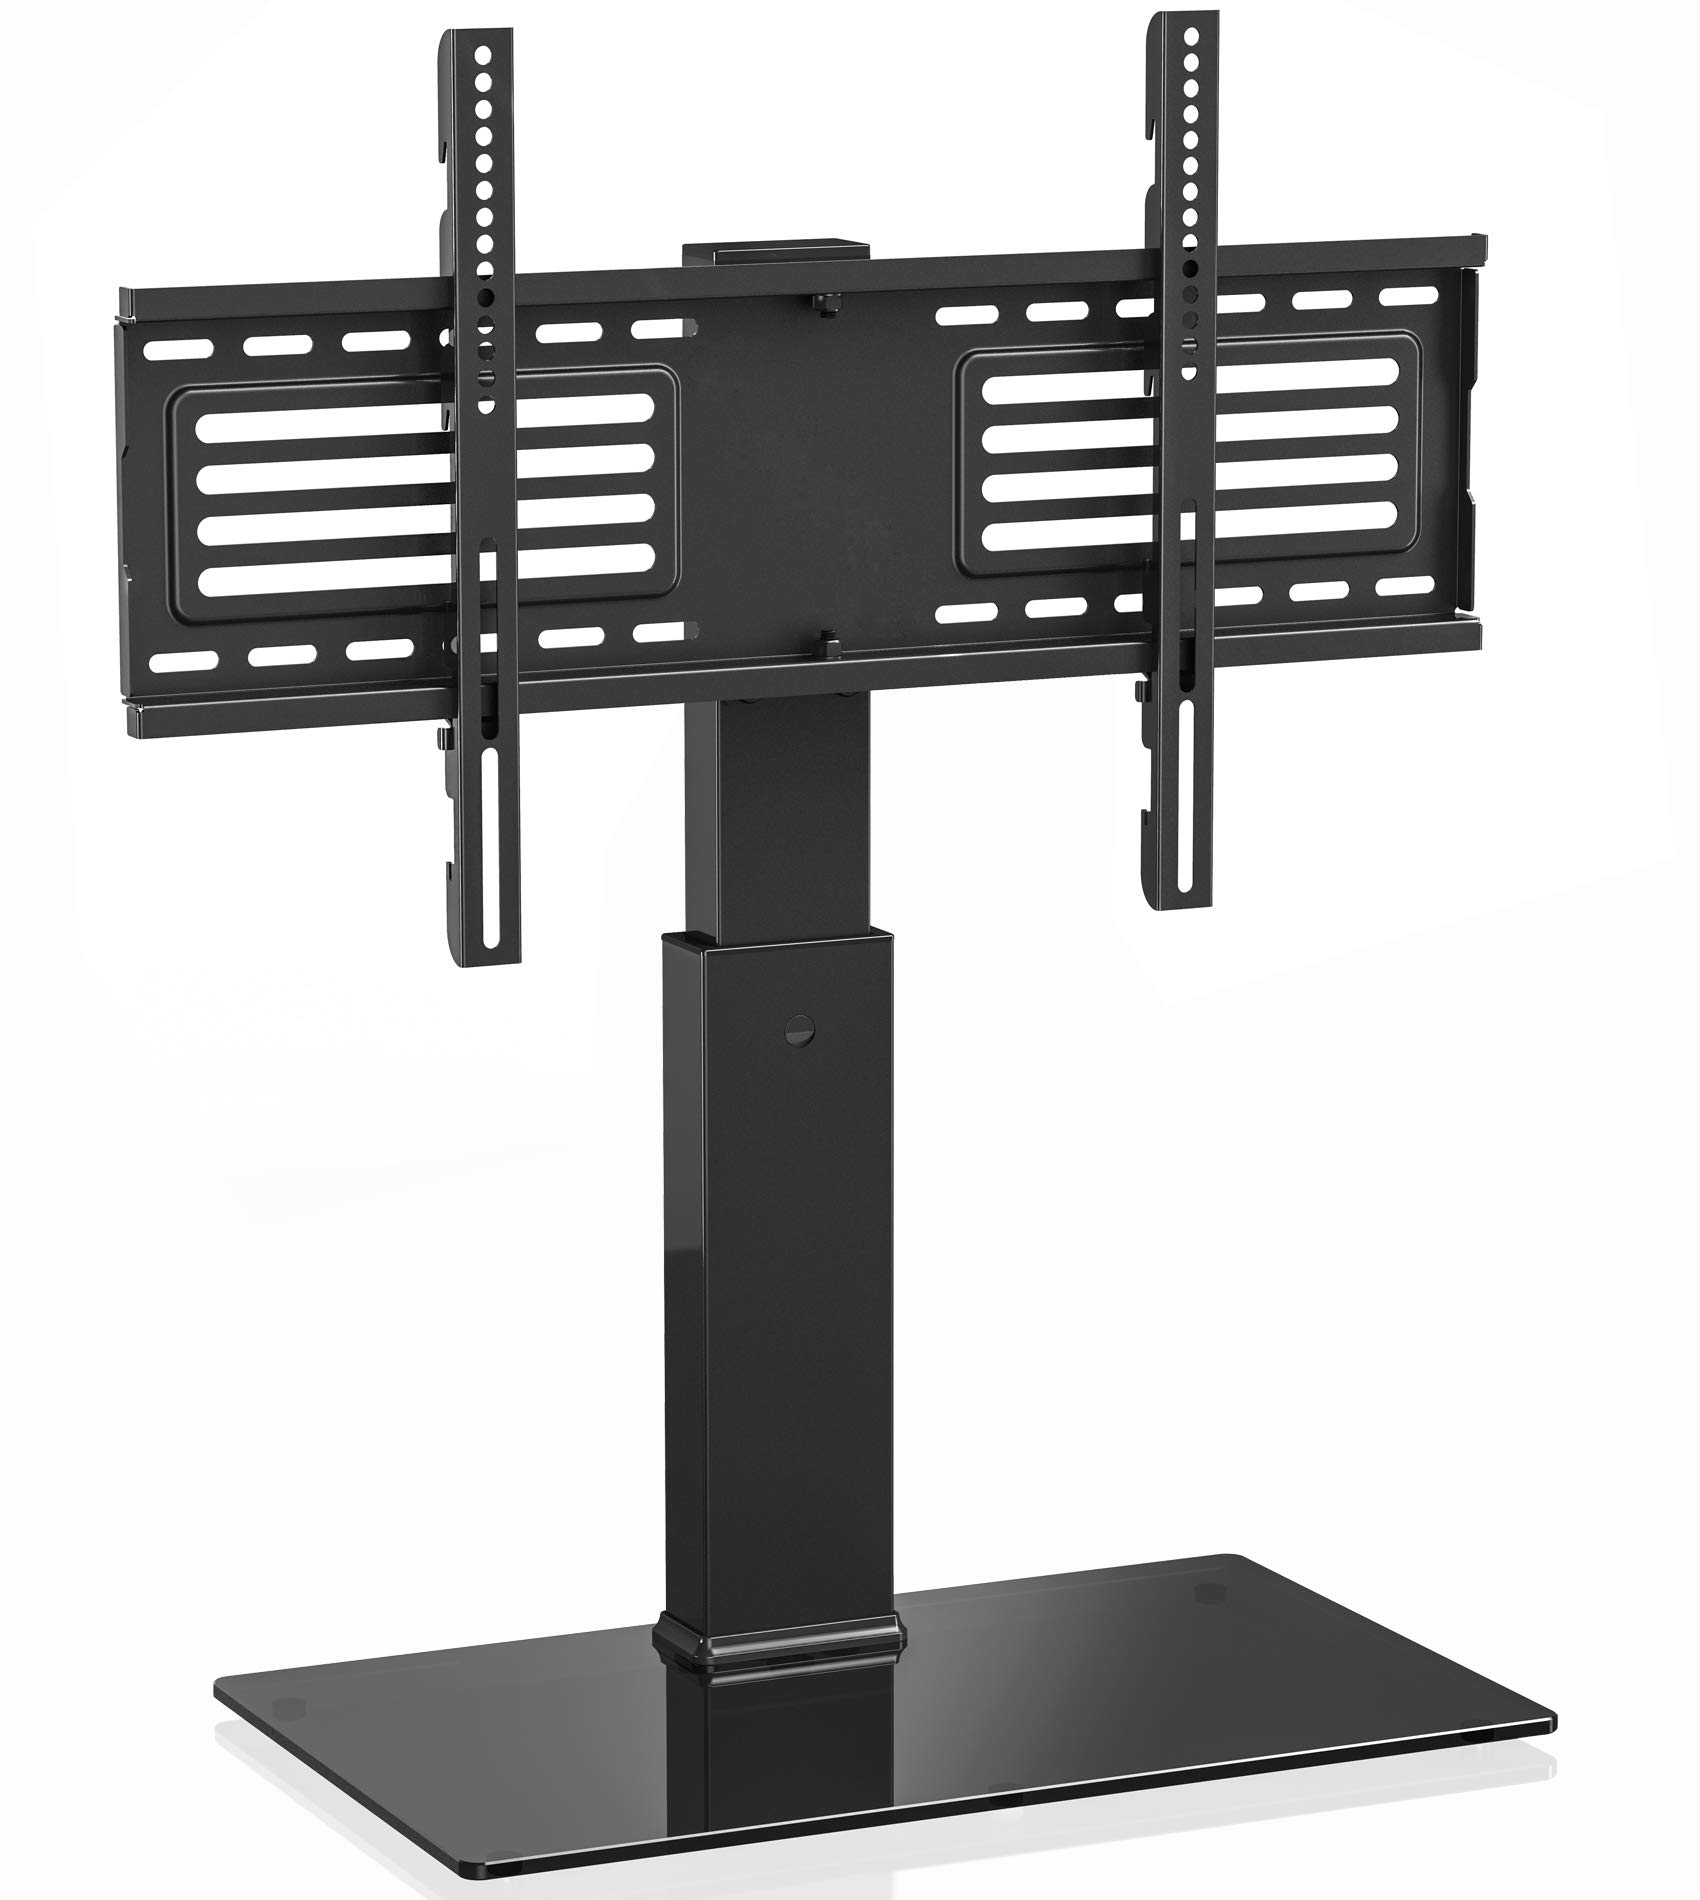 FITUEYES Universal TV Stand/Base Swivel Tabletop TV Stand with Mount for 42 to 75 inch Flat Screen TV 70 Degree Swivel, 9 Level Height Adjustable,Tempered Glass Base,Holds up to 110lbs Screens by FITUEYES